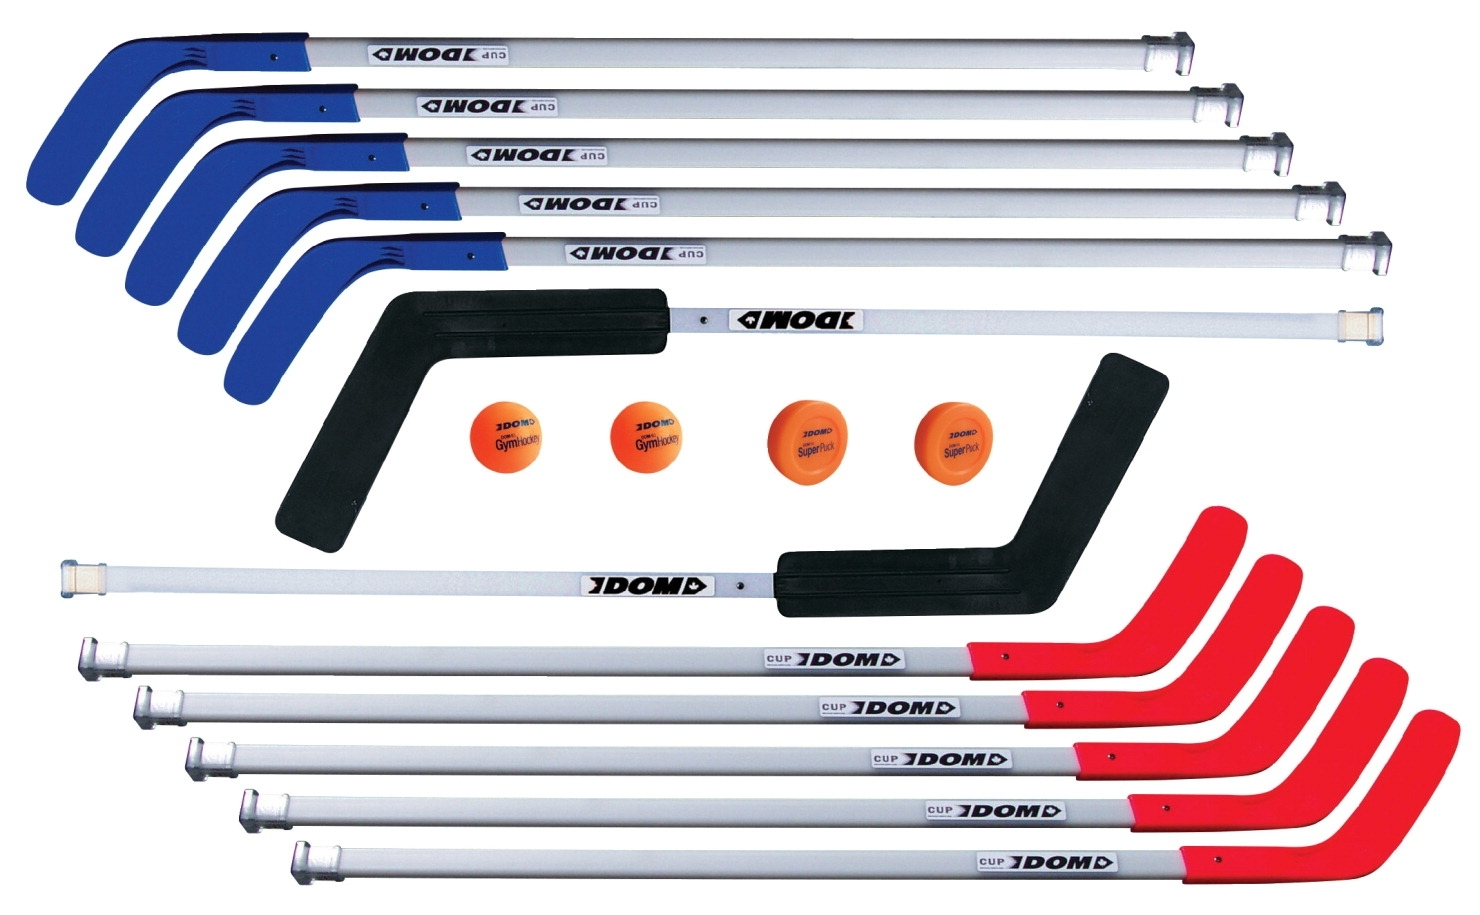 Sports & Fitness Physical Education & Sport Goals Floor Hockey Goals - 032350 - Dom 52 In Pro Replacement Floor Hockey Stick; Blue 032350